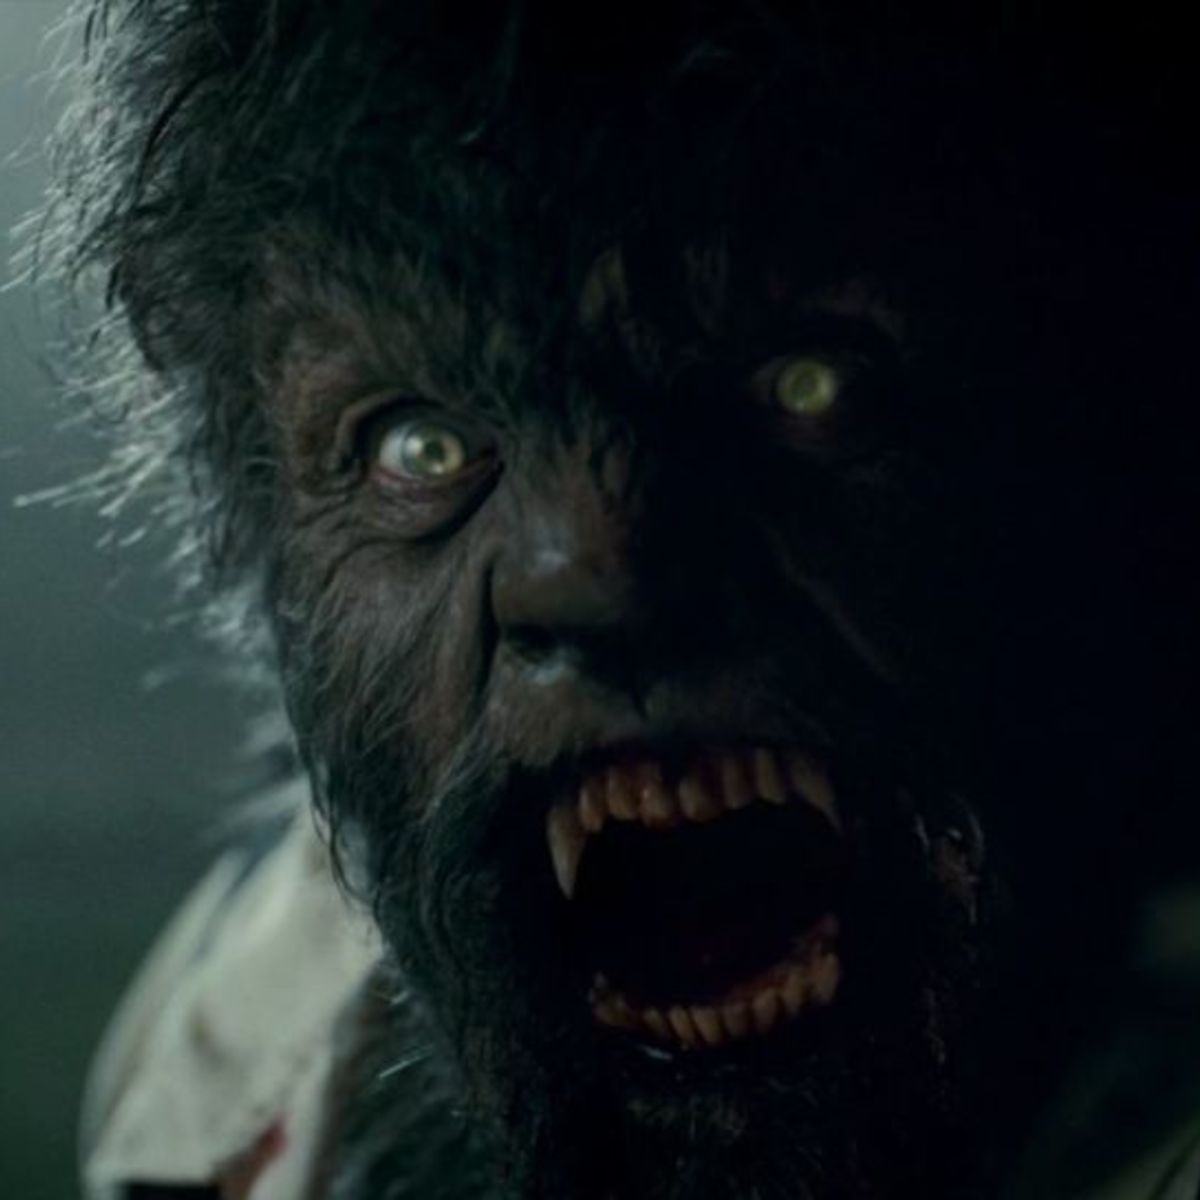 The-Wolfman-2010-image-the-wolfman-2010-36269318-1280-696.jpg